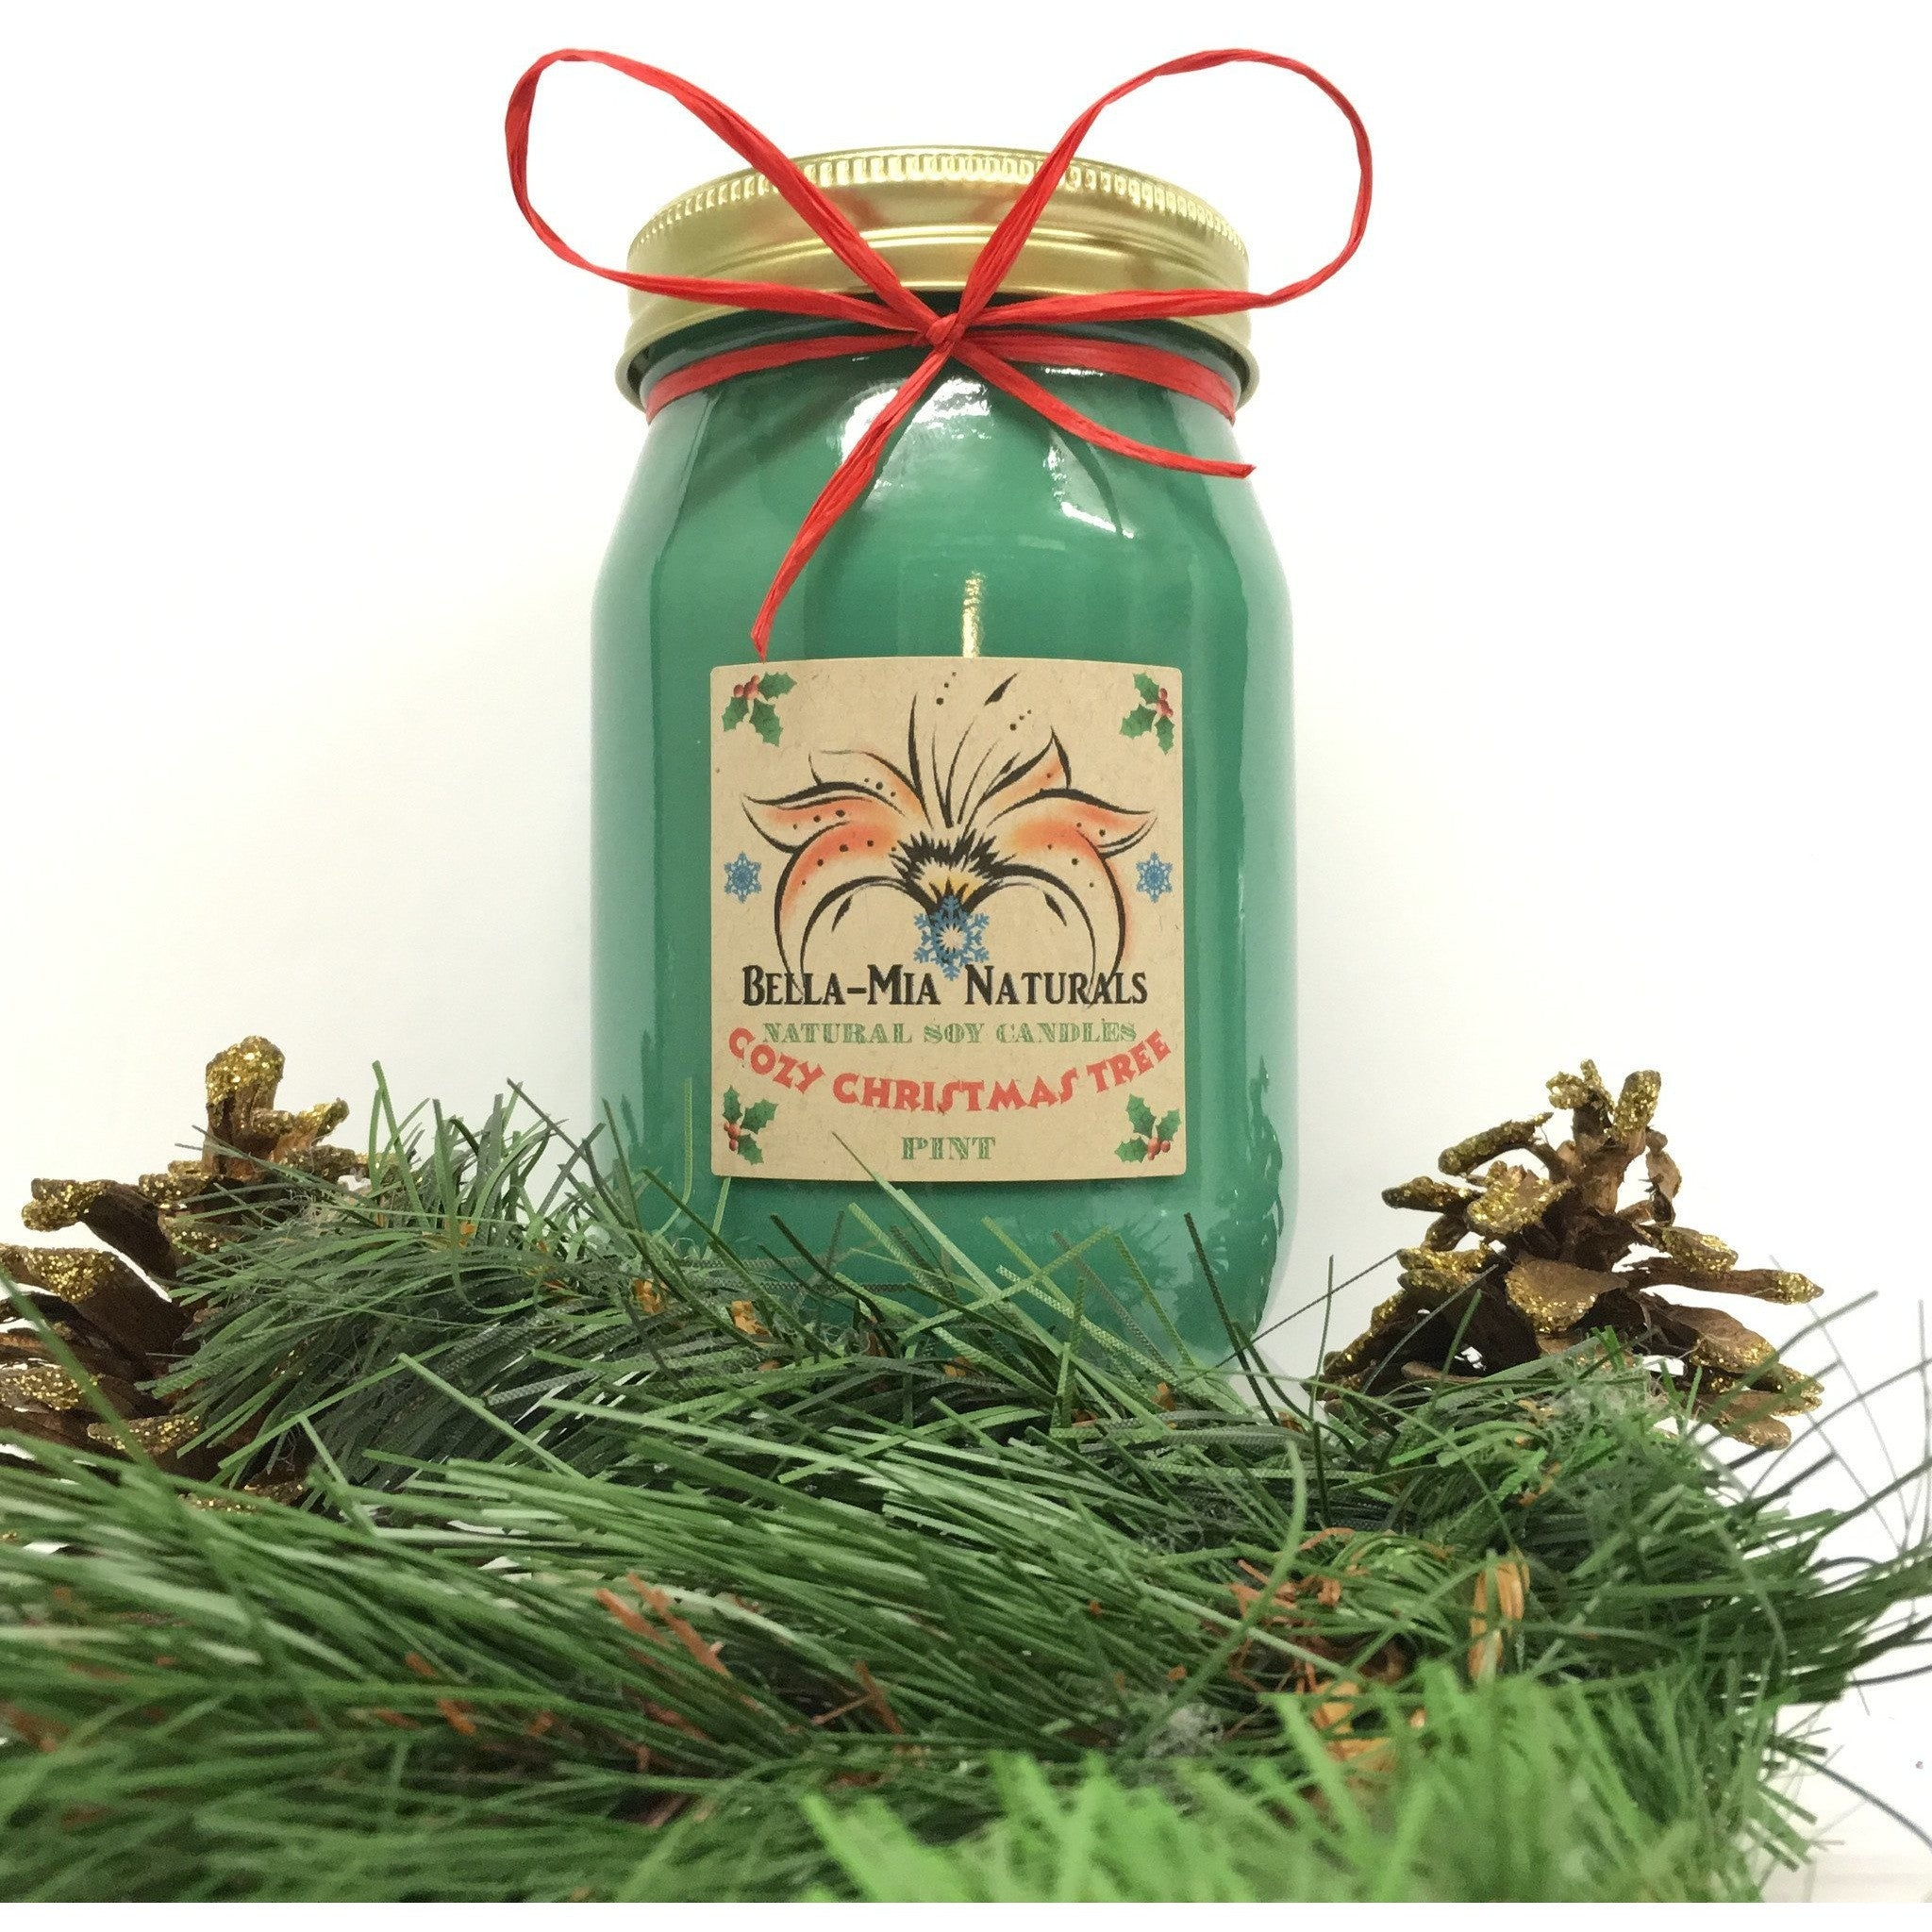 Cozy Christmas Tree Natural Hand Poured Soy Candles -  - Bella-Mia Naturals All Natural Soy Candles & Lip Balms - 1